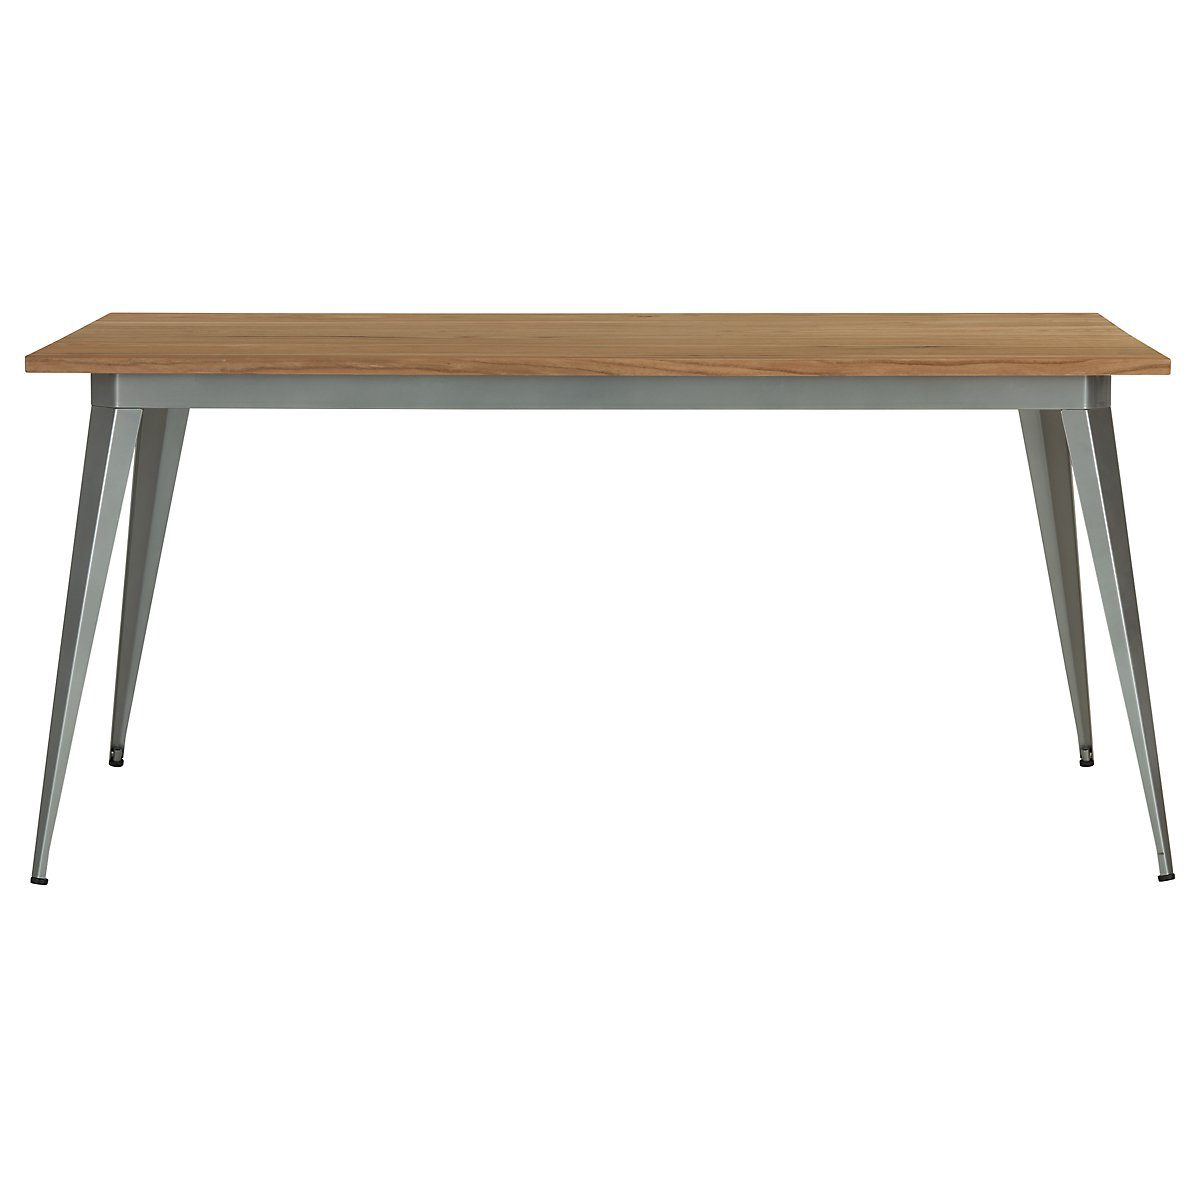 Huntley Light Tone Rectangular Table